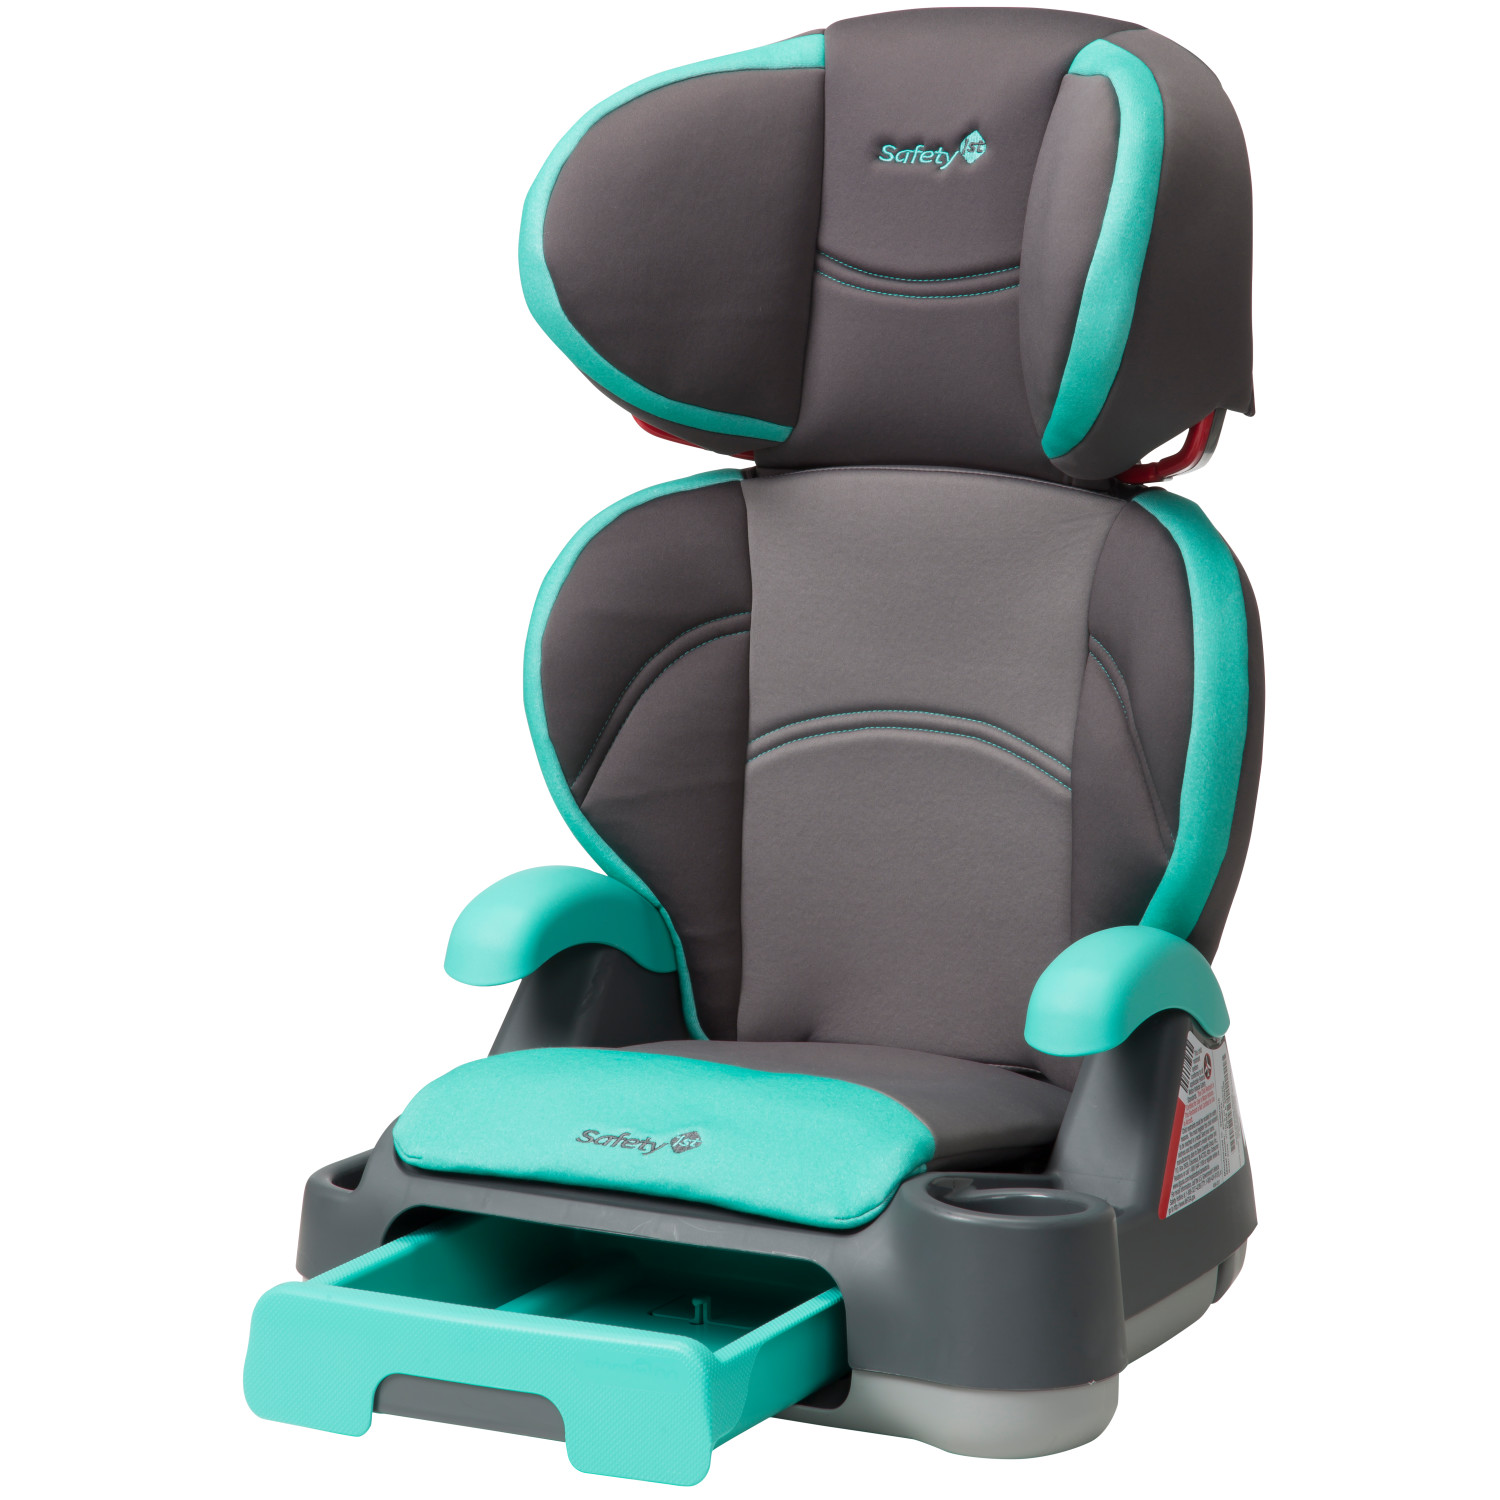 Safety 1st Store 'n Go Belt-Positioning Booster Car Seat, Ro